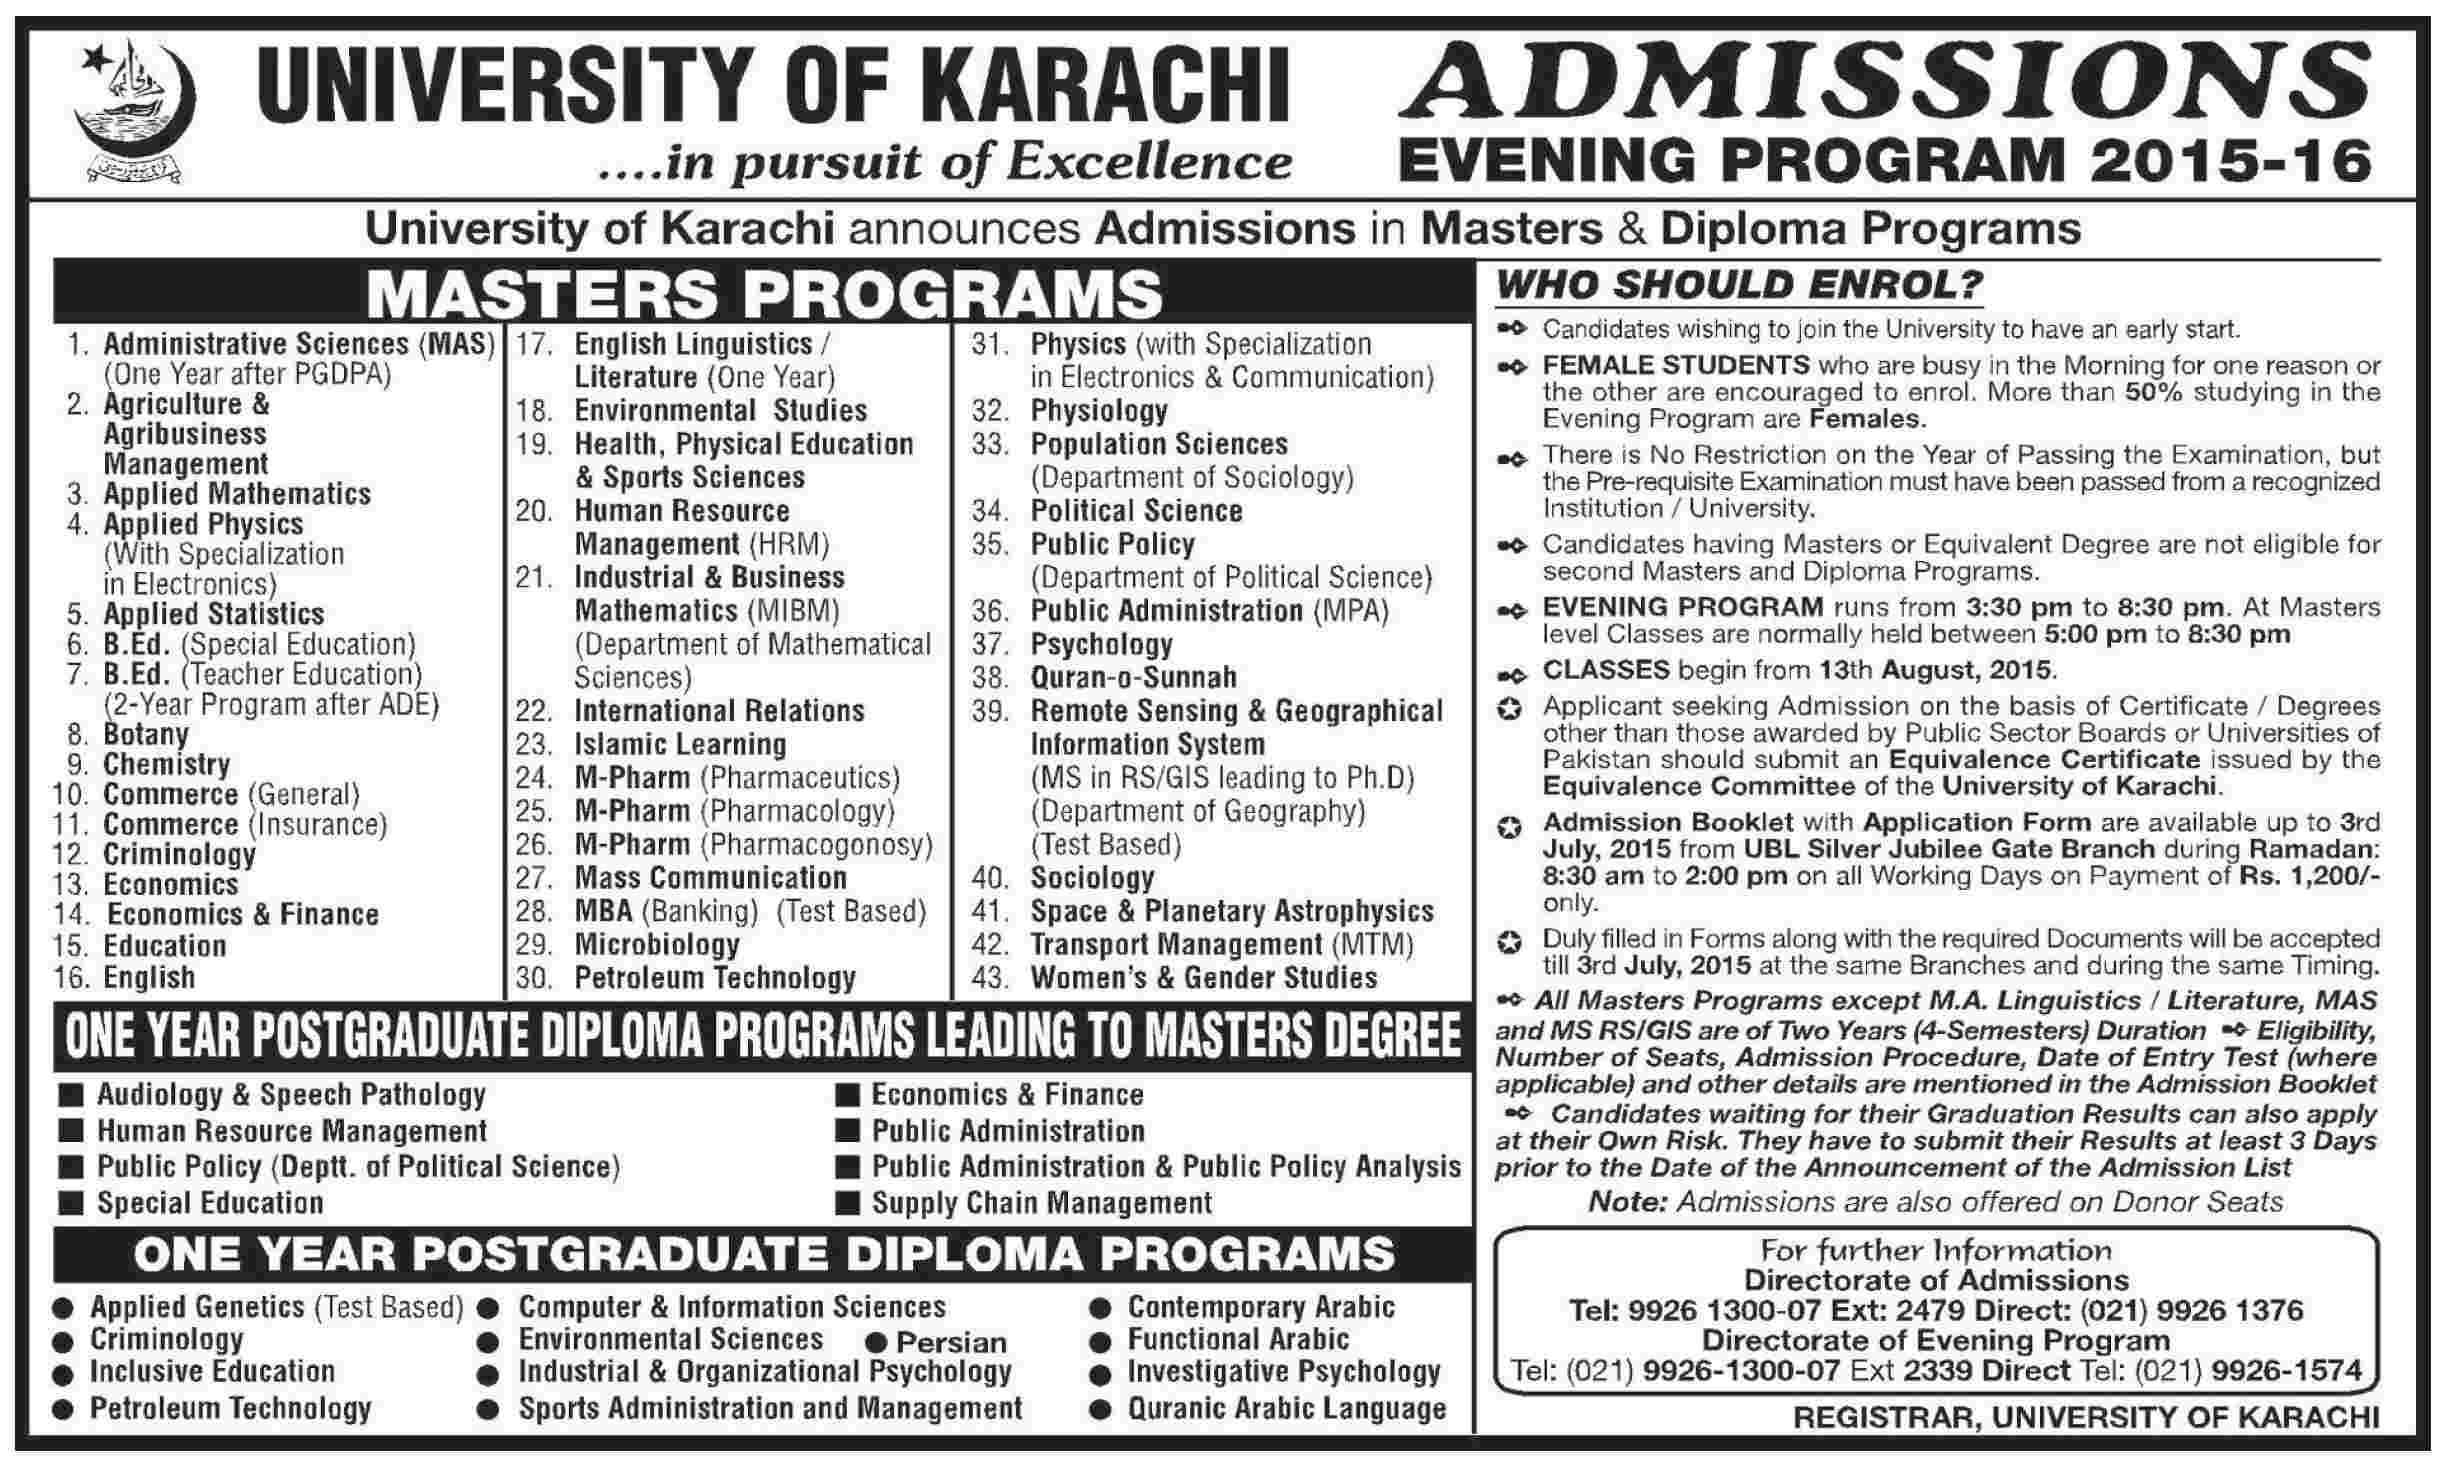 University Of Karachi UOK Evening Program Admission 2015